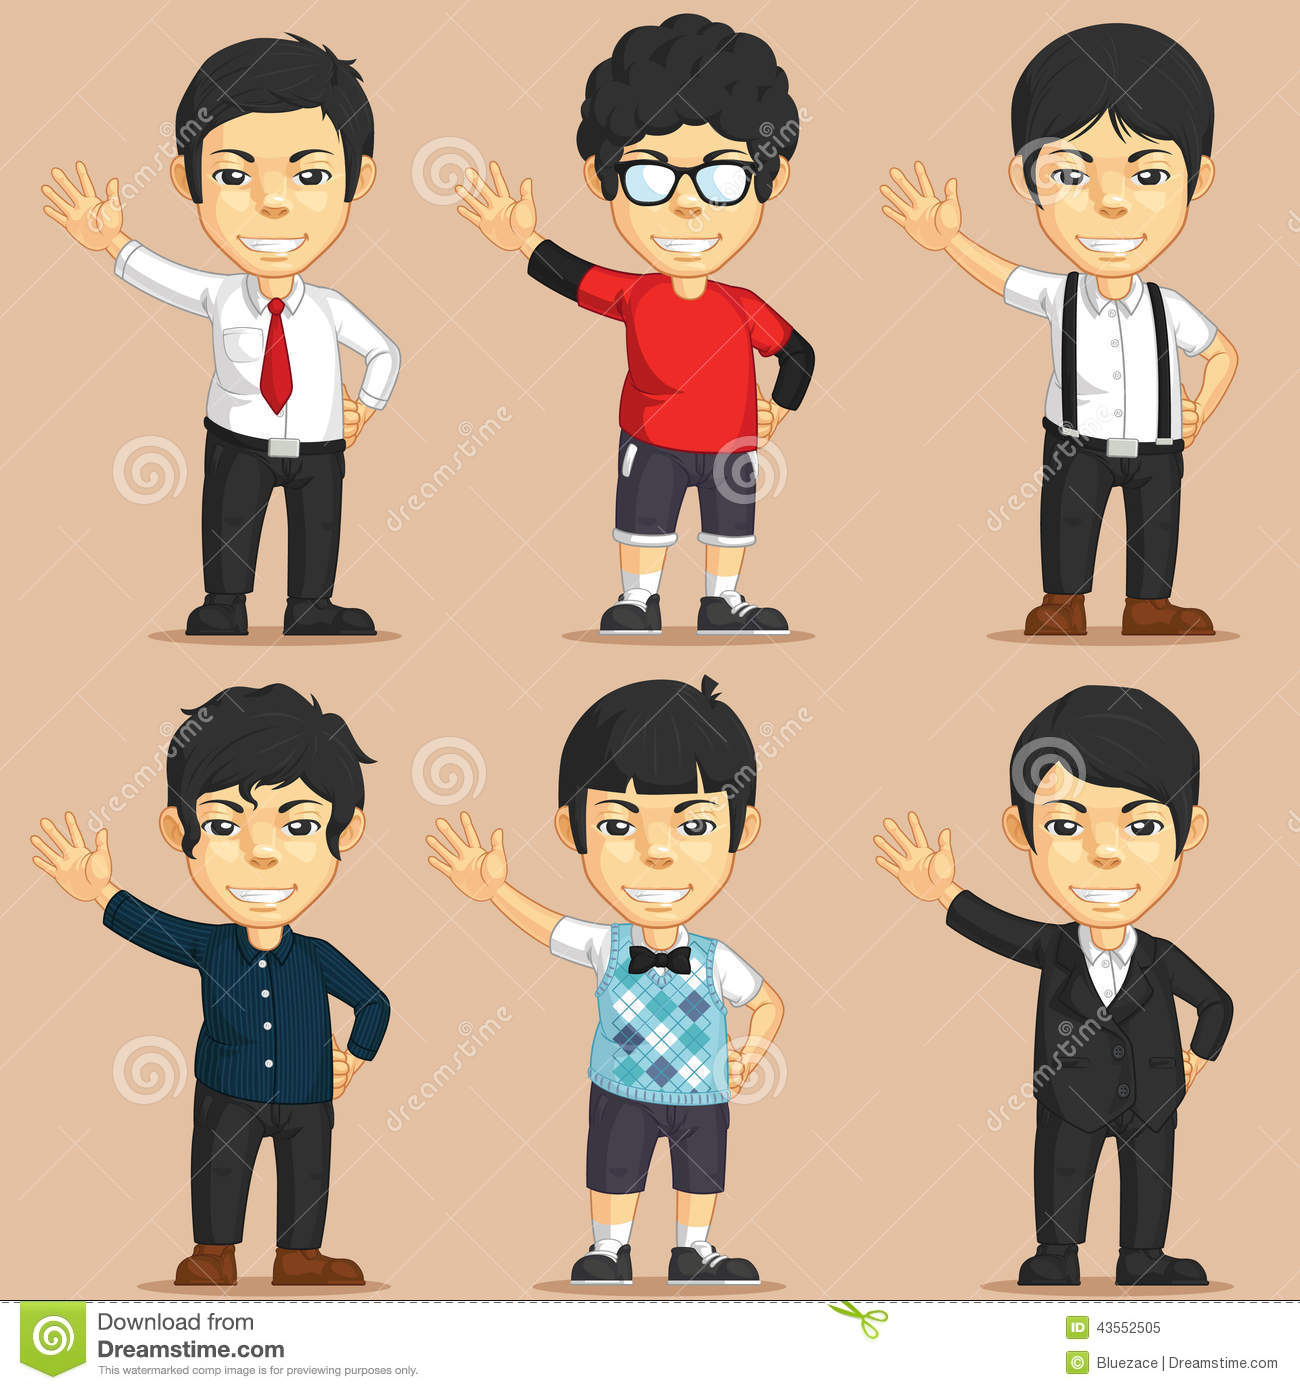 Cartoon Characters Clothes : Office worker character set stock vector image